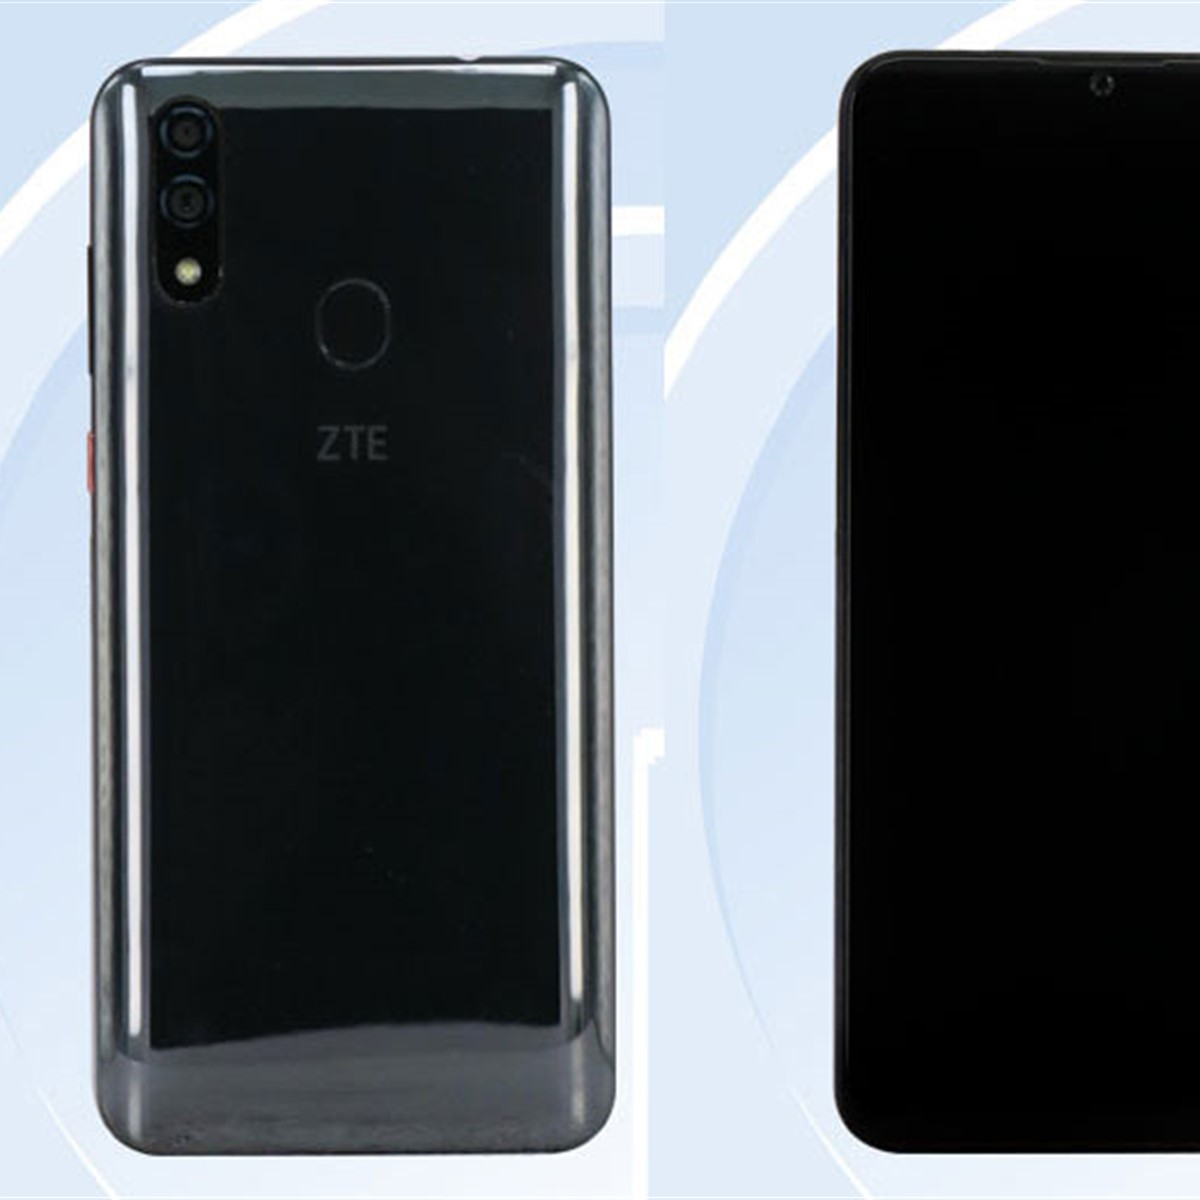 Steps to install TWRP on ZTE Blade A2 Plus